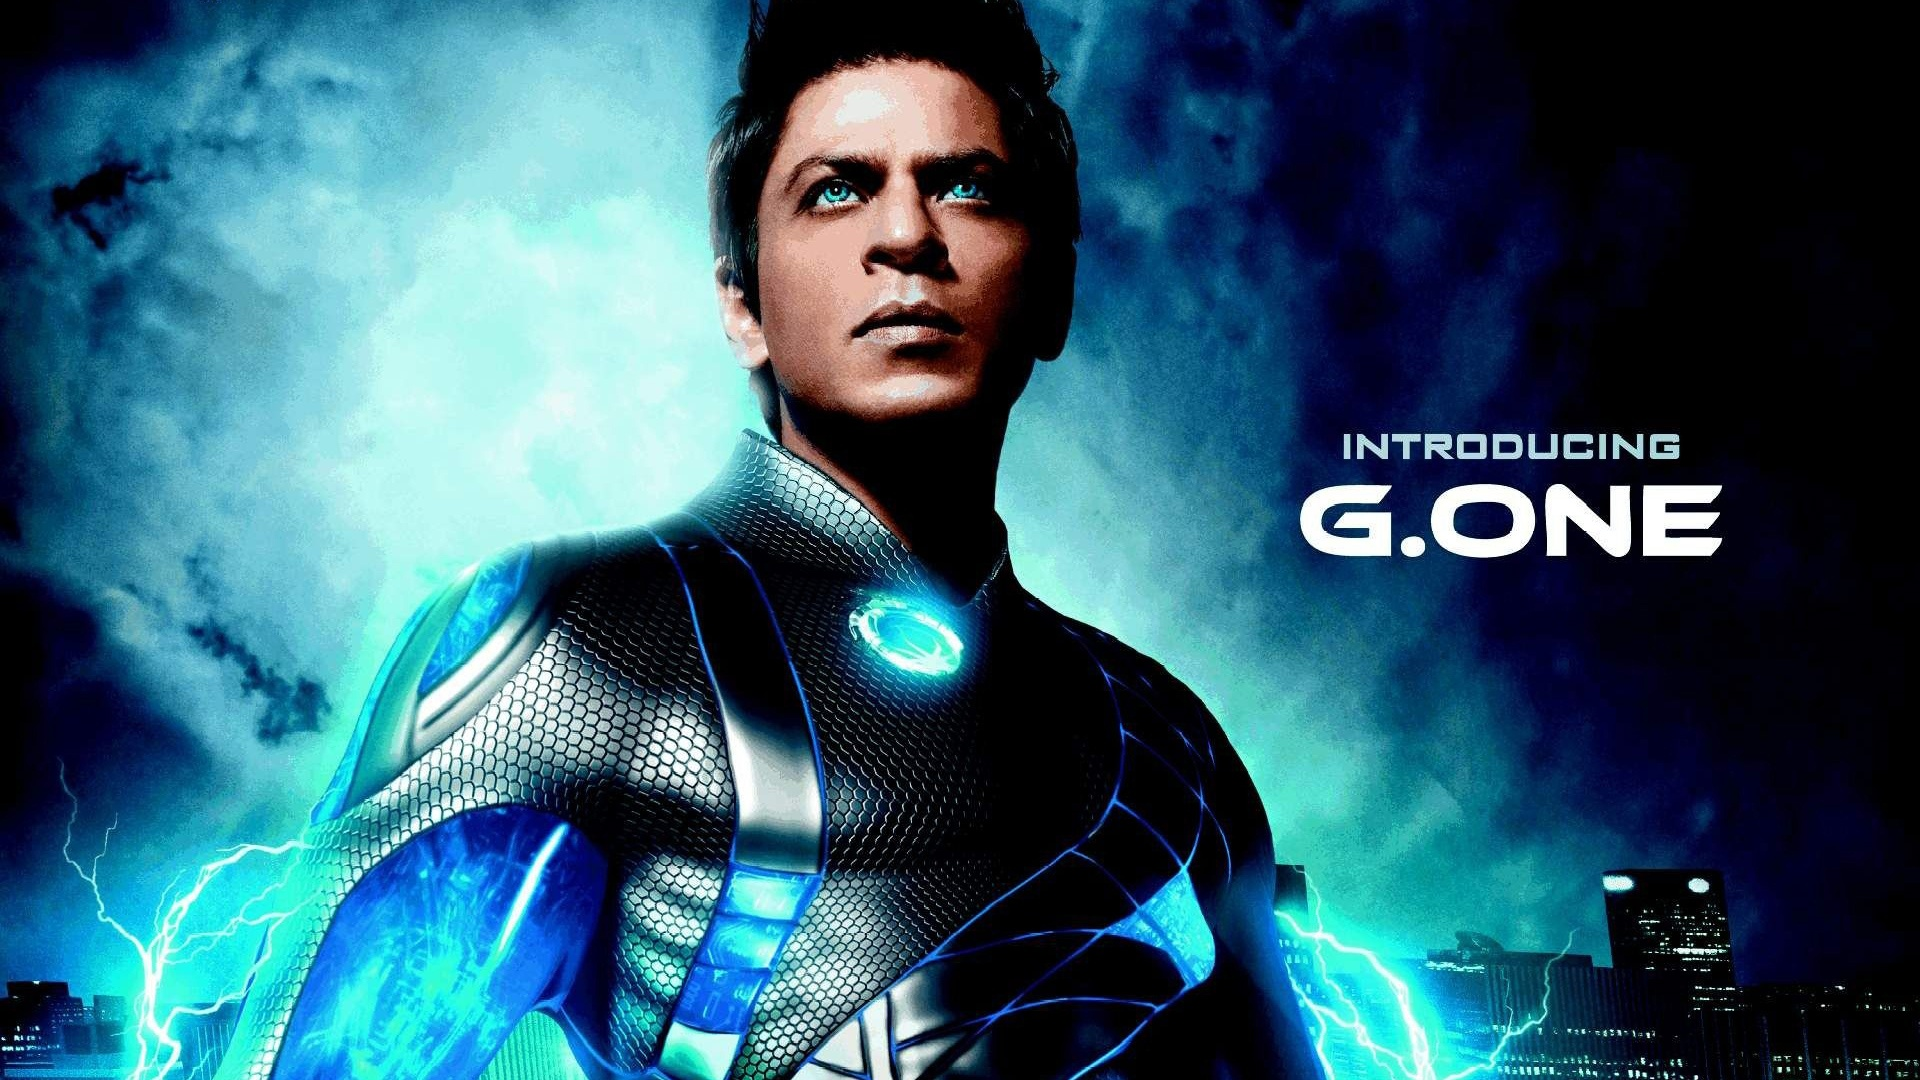 Shahrukh Khan In Ra One Wallpapers In Jpg Format For Free Download